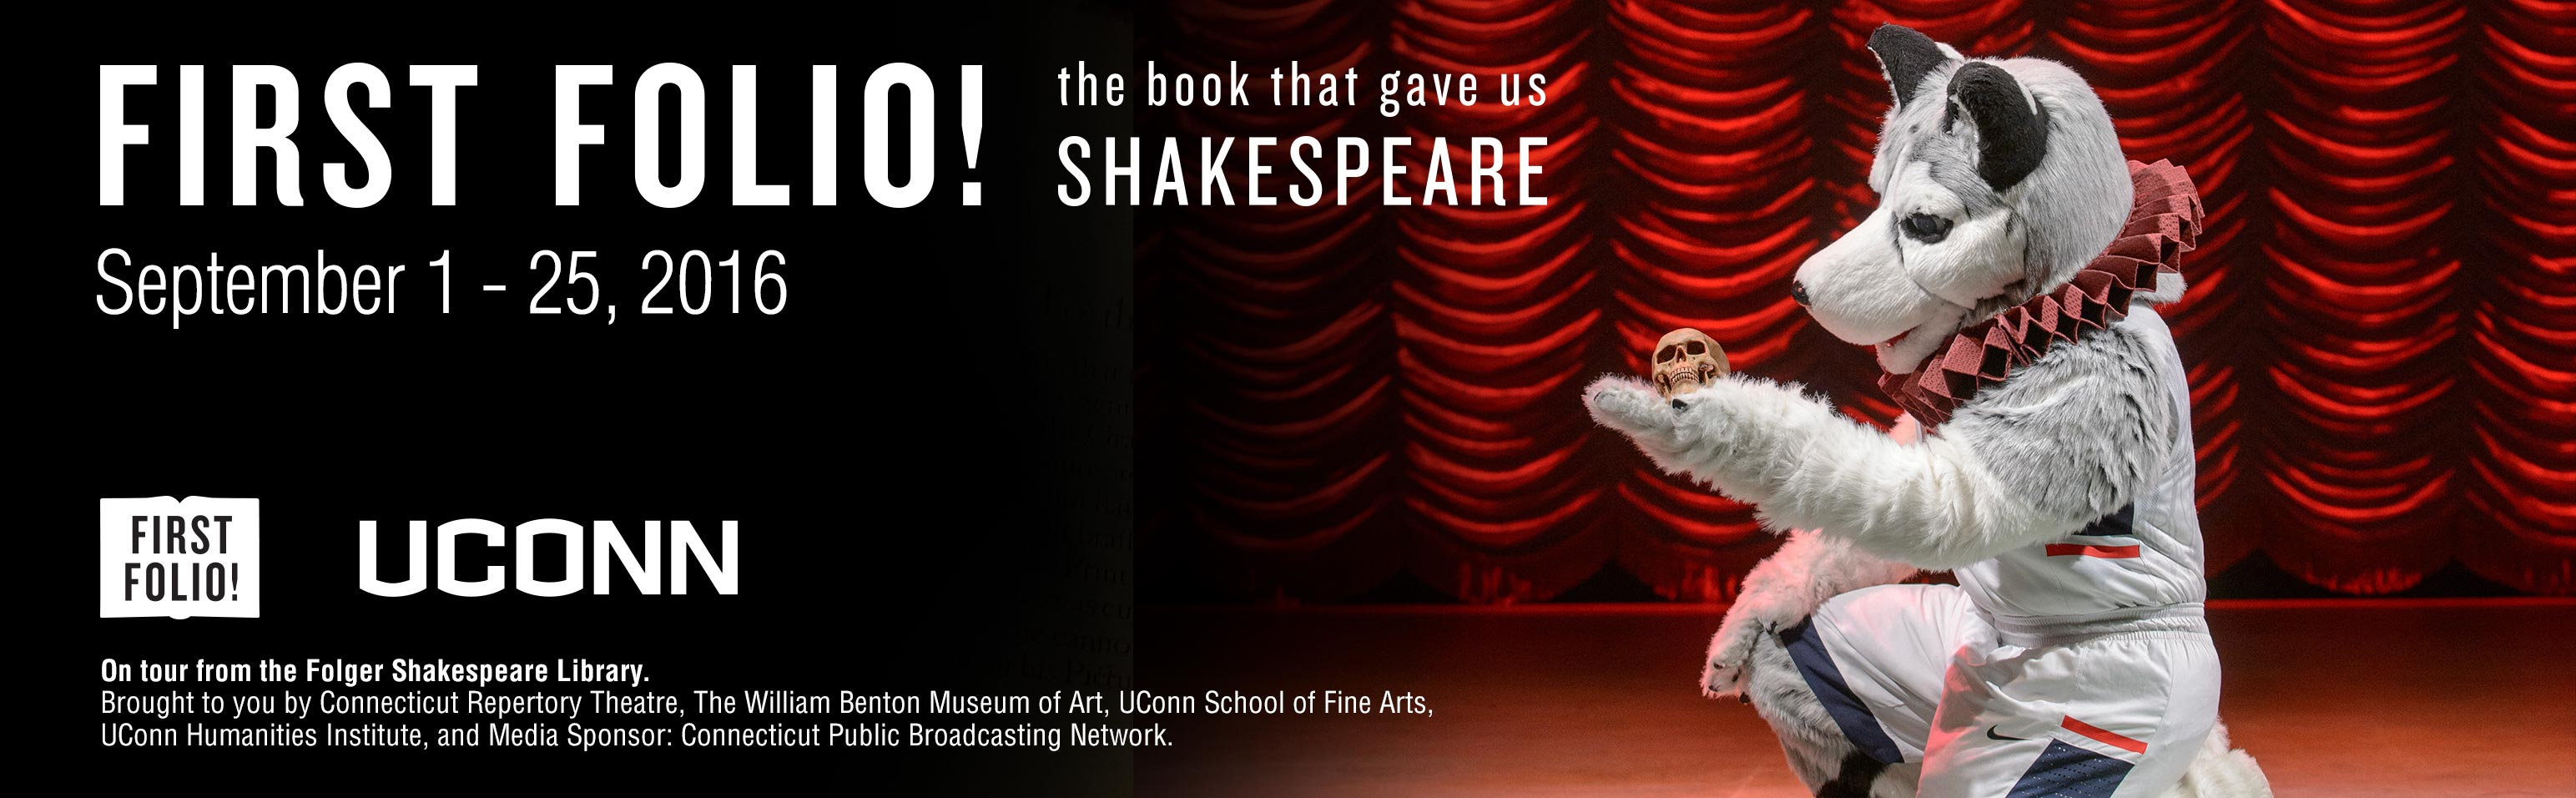 Shakespeare's First Folio at UConn